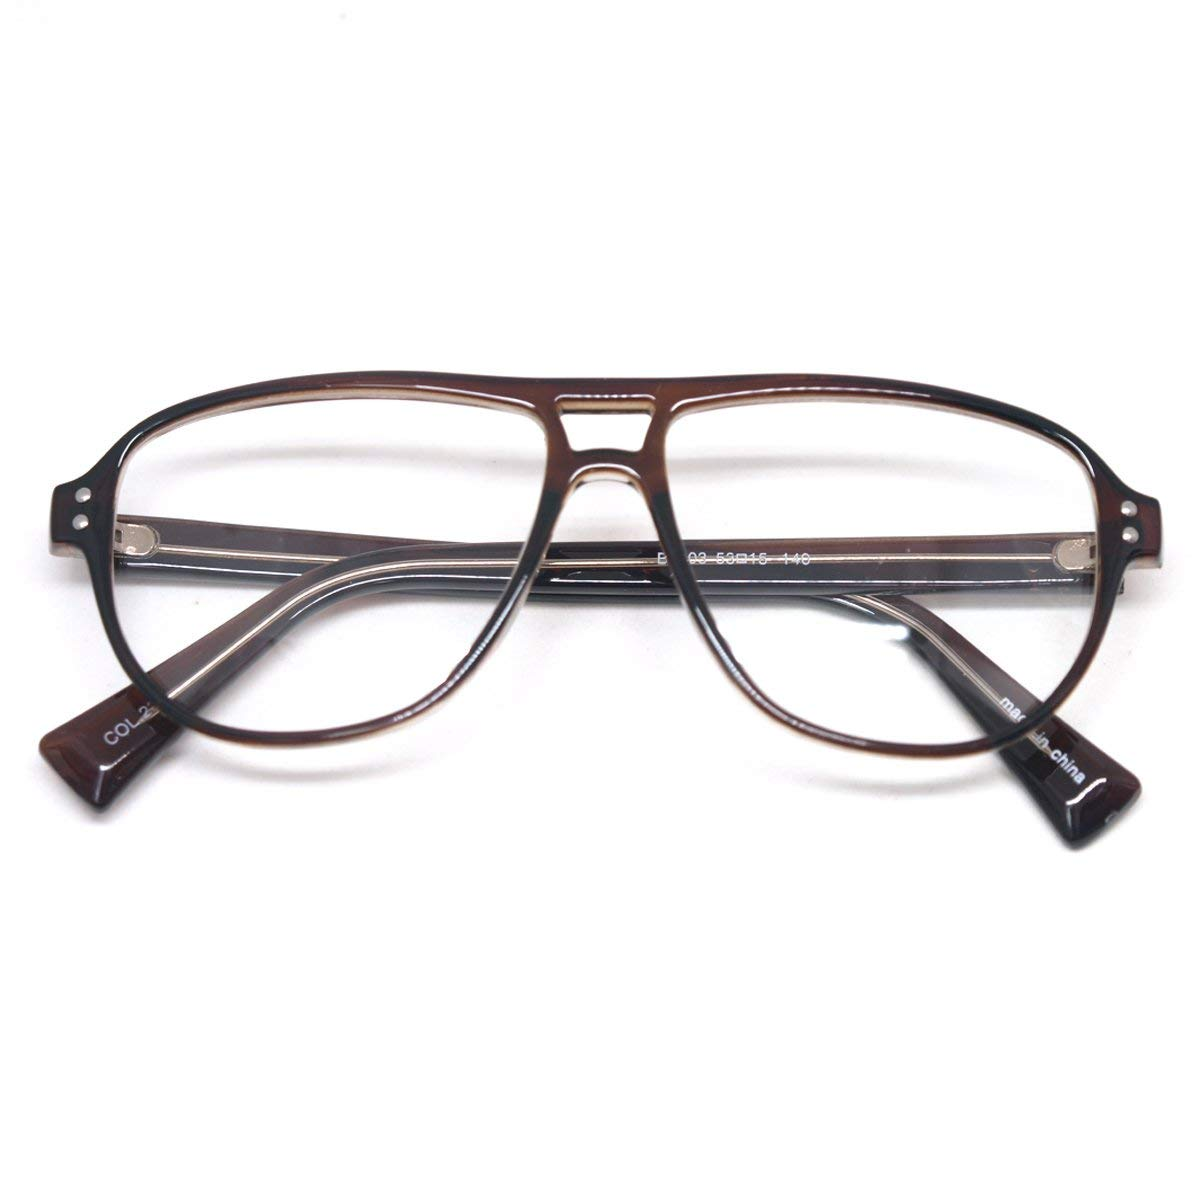 31384fe355a4 Get Quotations · Vintage Inspired Eyewear Geek Clear Lens Horn Rimmed  Fashion Nerd Eyeglasses